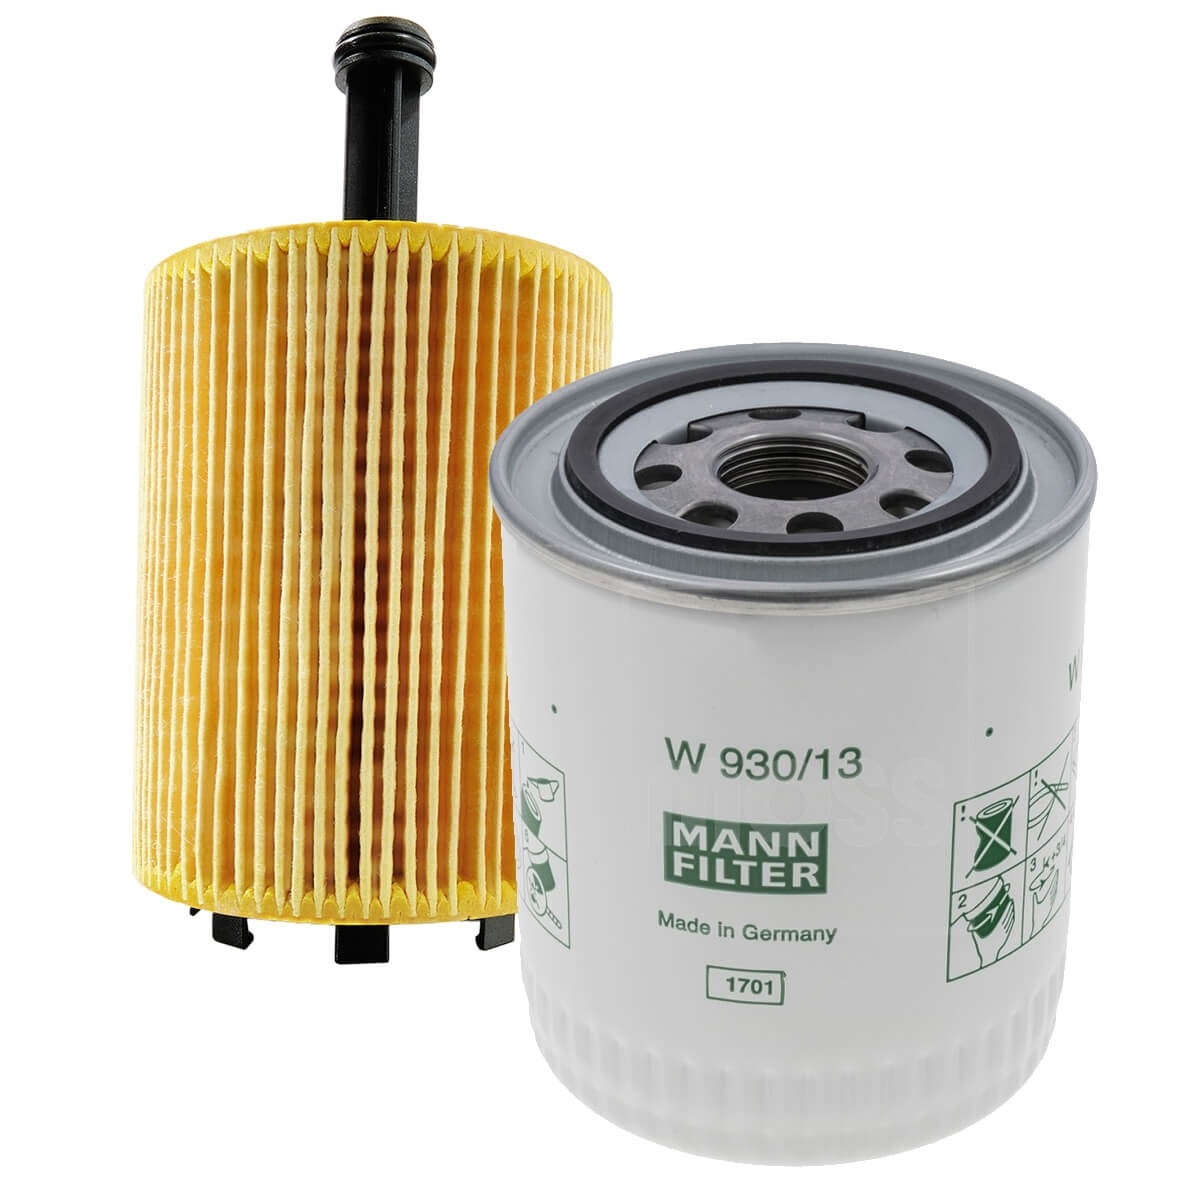 CADILLAC BLS Oil Filter